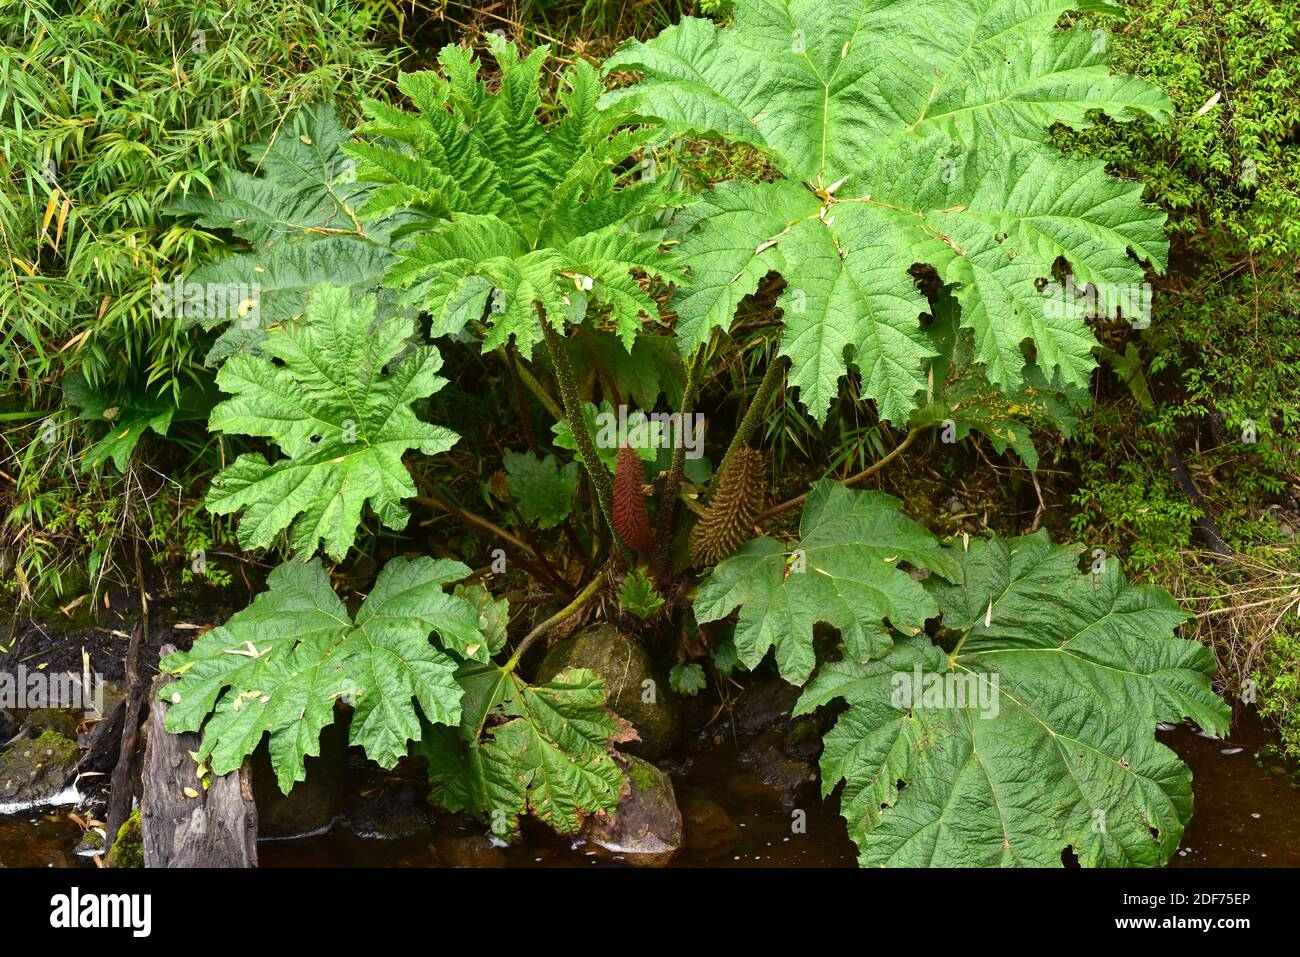 Chilean rhubarb or nalca (Gunnera tinctoria or Gunnera chilensis) is a big perennial herb native to central and southern Chile and southwestern Stock Photo